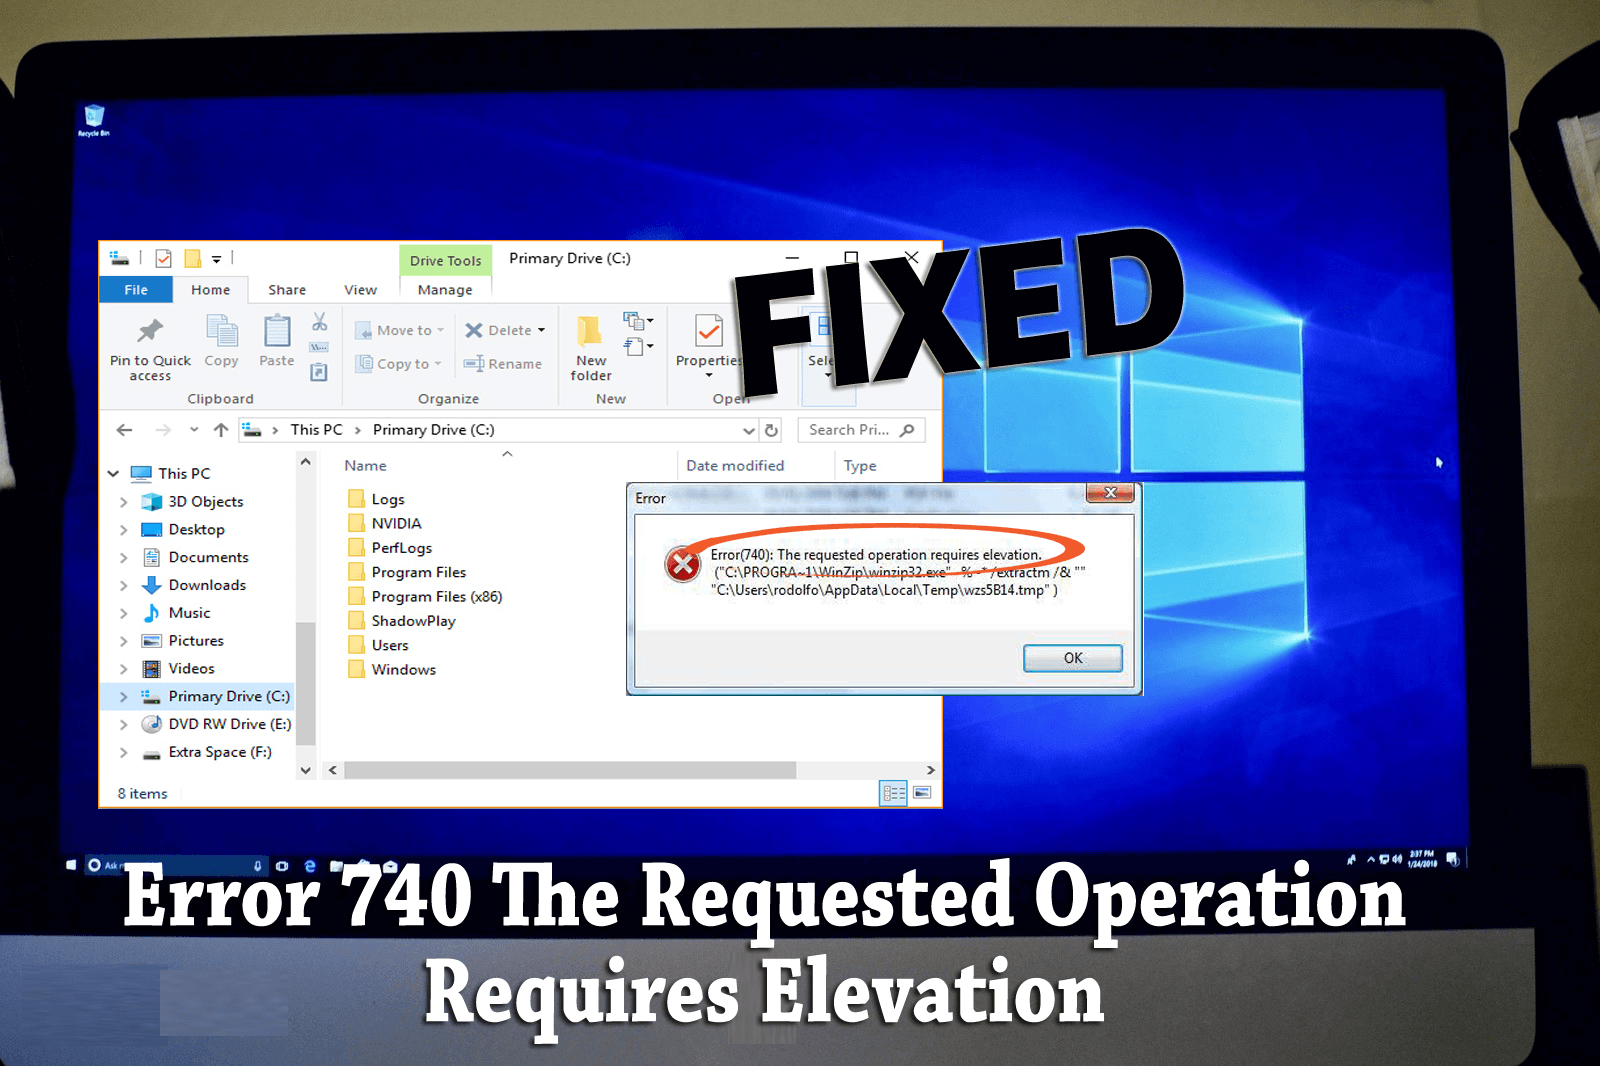 error 740 the requested operation requires elevation